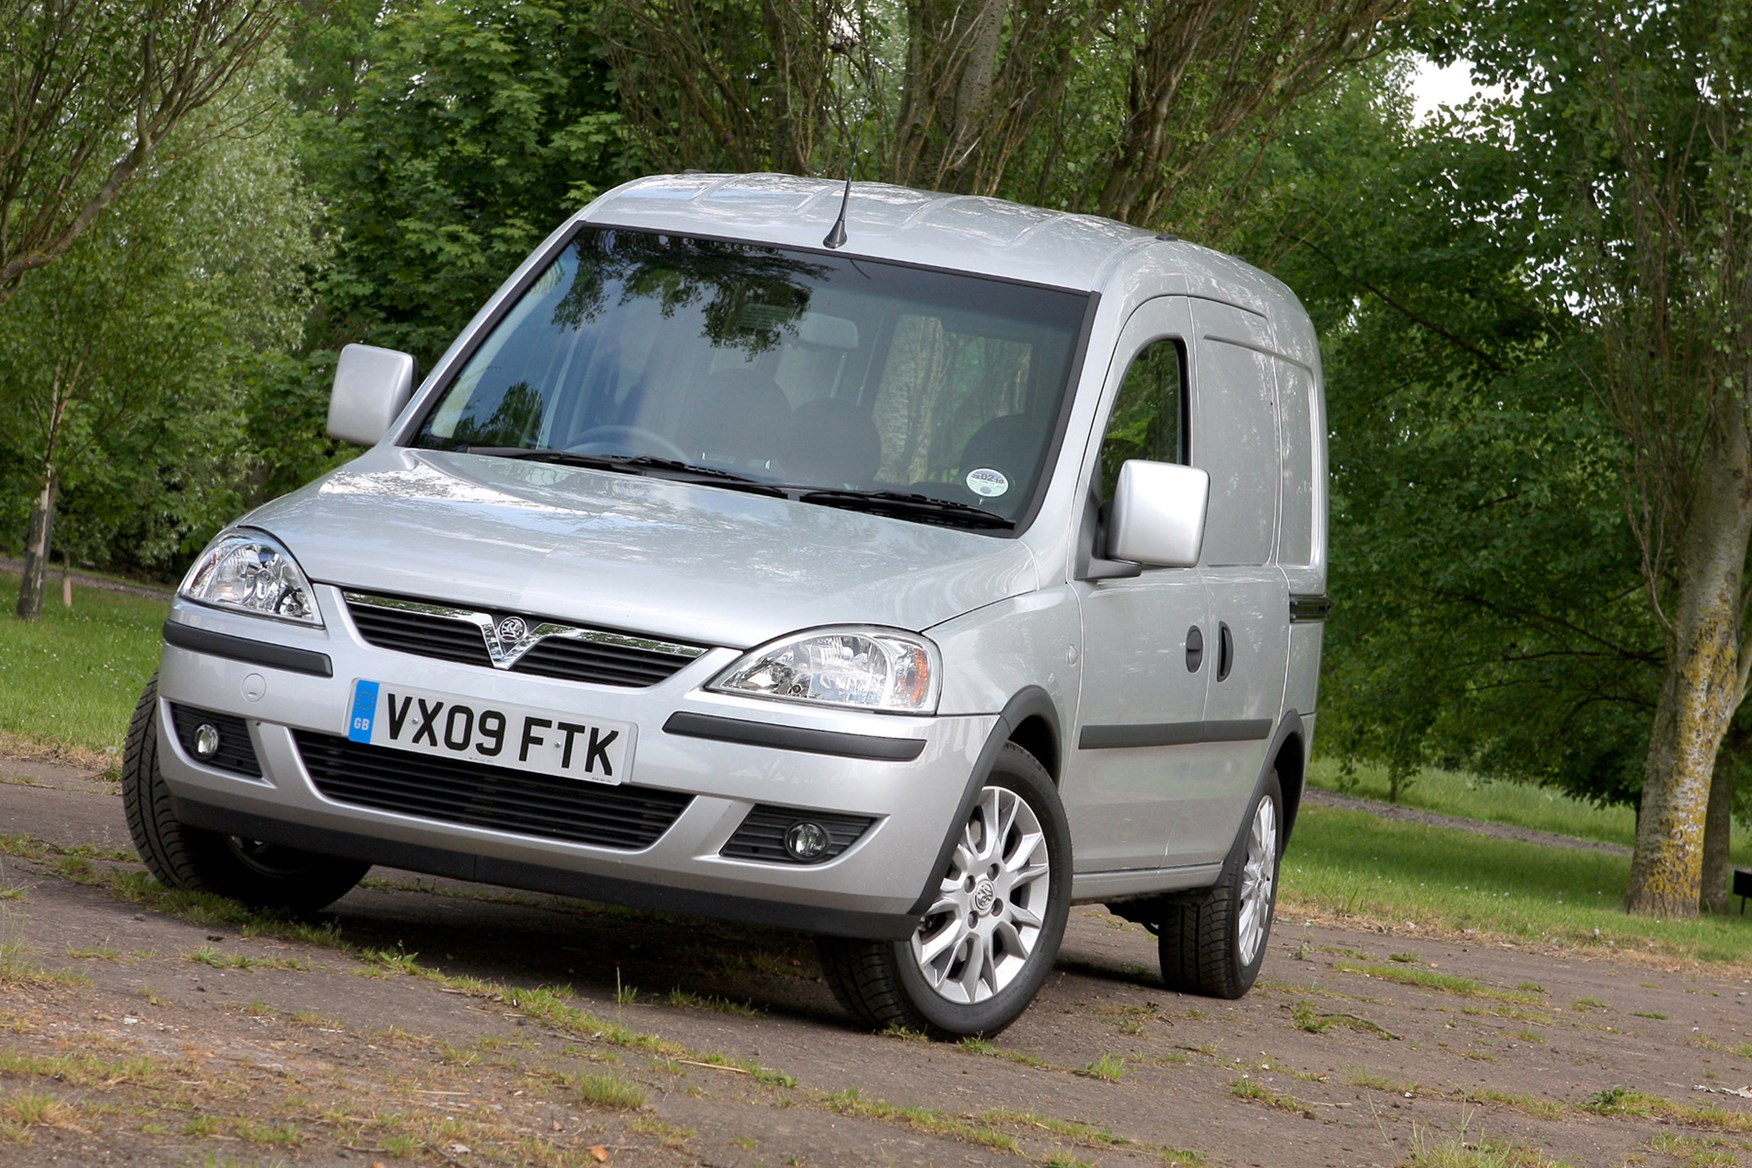 Vauxhall Combo review on Parkers Vans - exterior